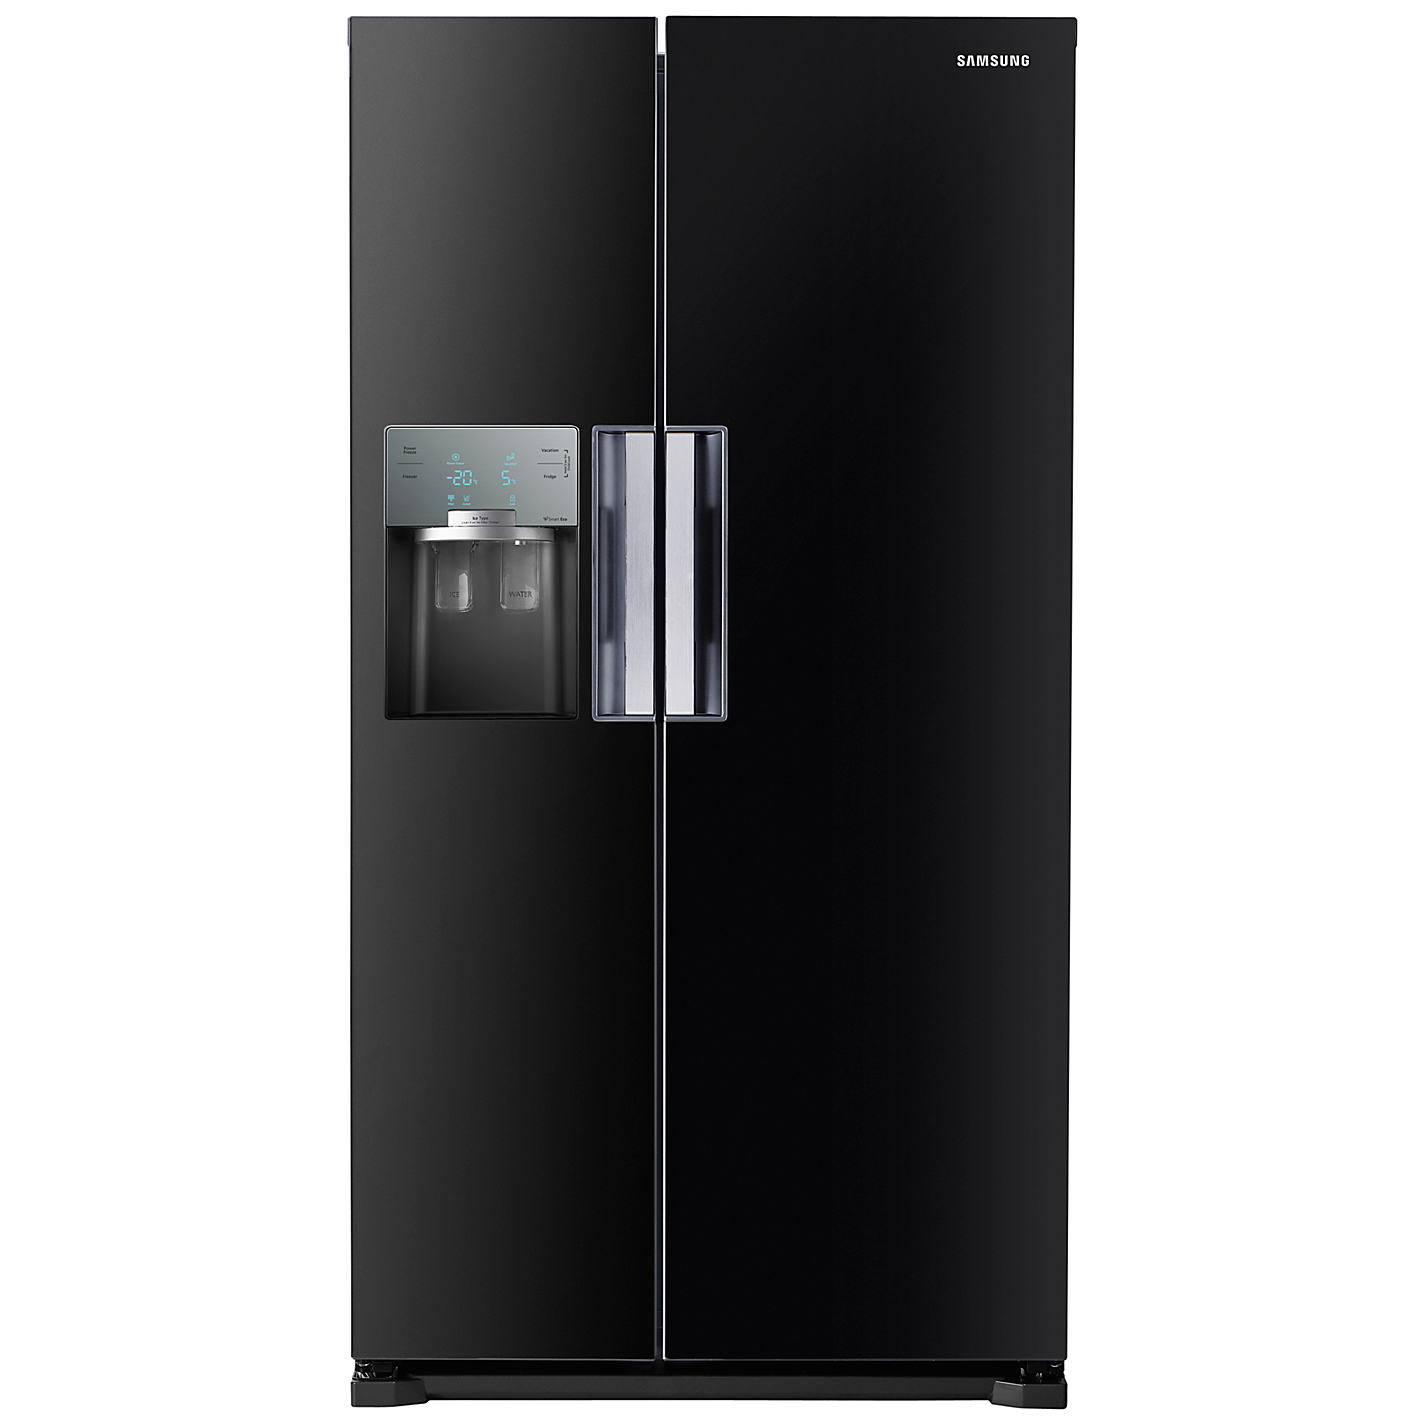 french samsung doors replacement door a refrigerator have we freezer with graphic appliance